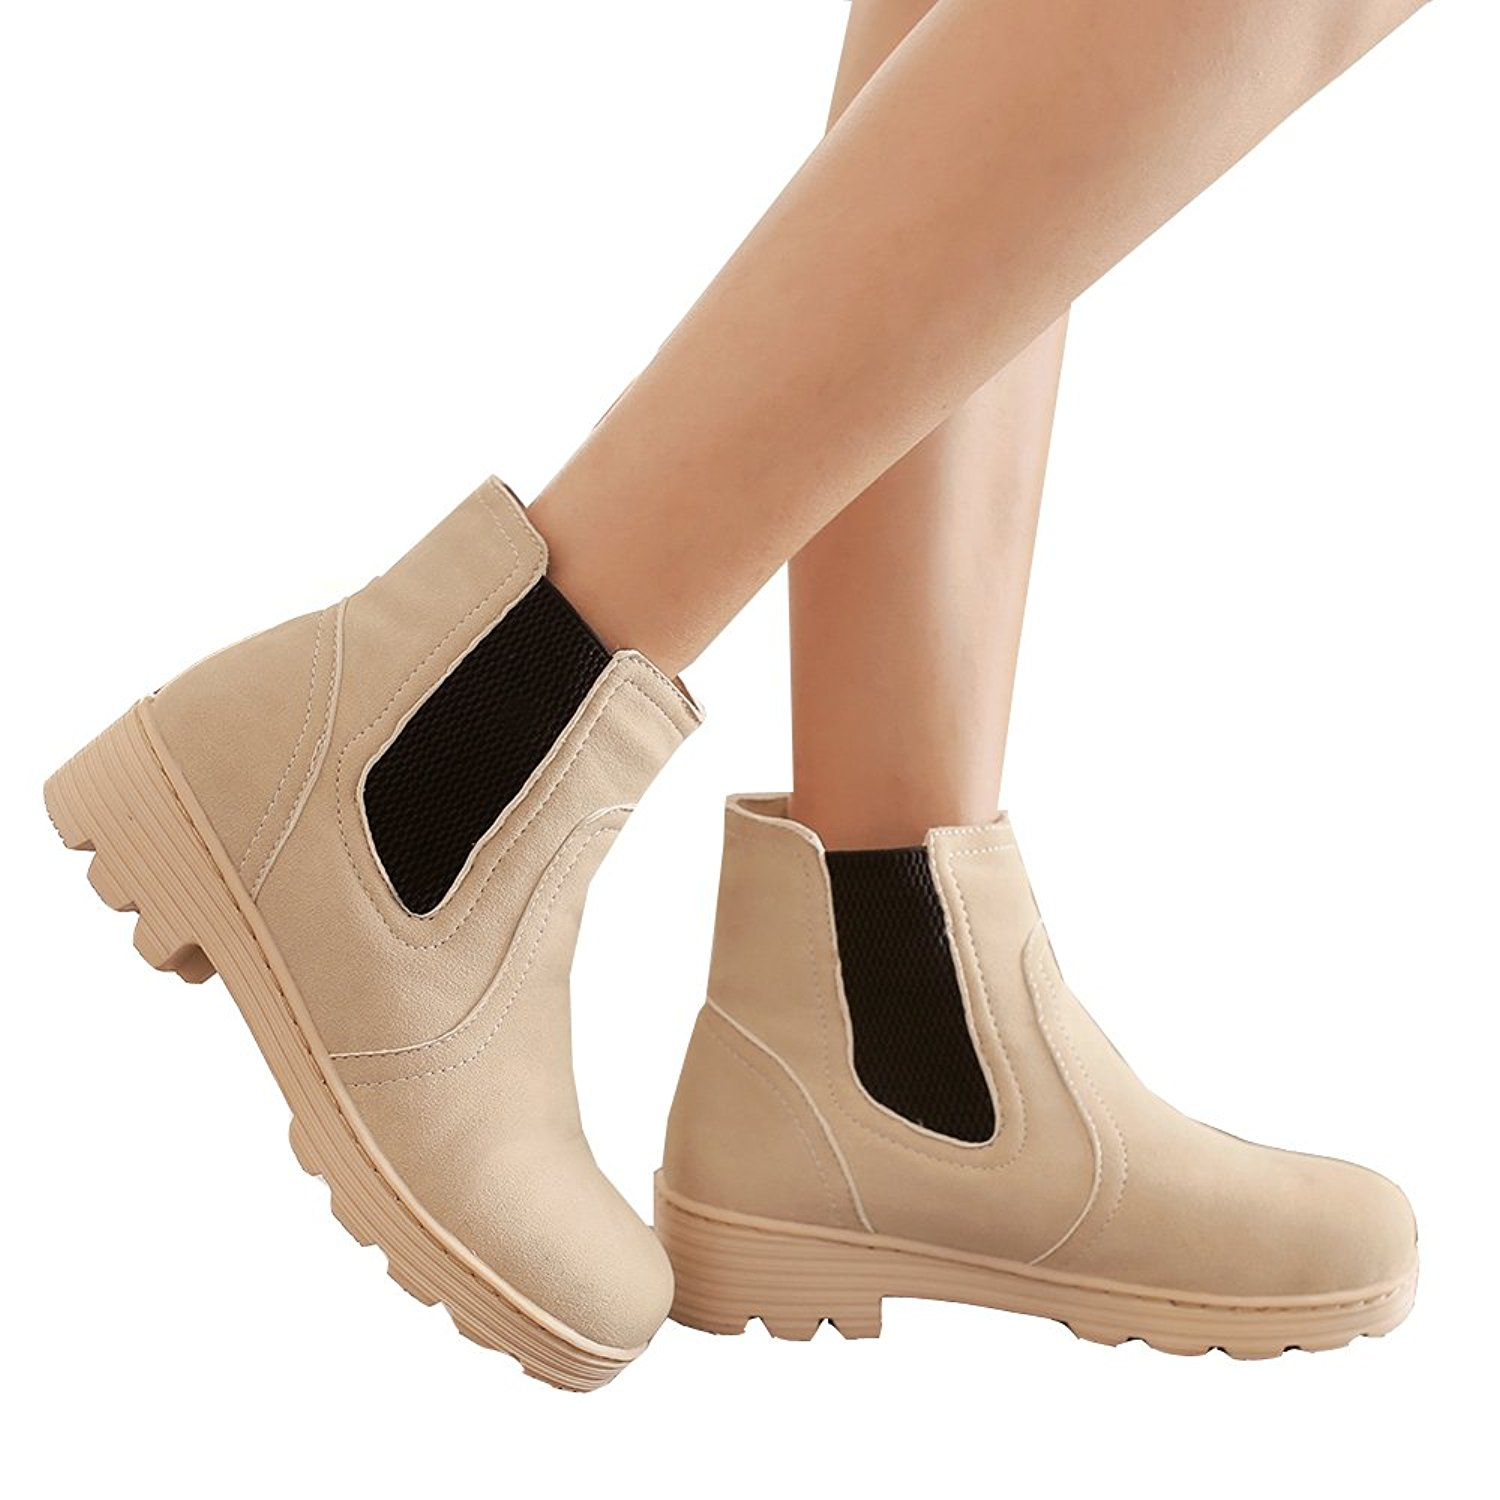 da0cb86e3666 Get Quotations · Caddy Wolfclaw Women Sweet Winter Fur Lined Snow Boots Low  Heel Martin Boots Round Toe Chelsea